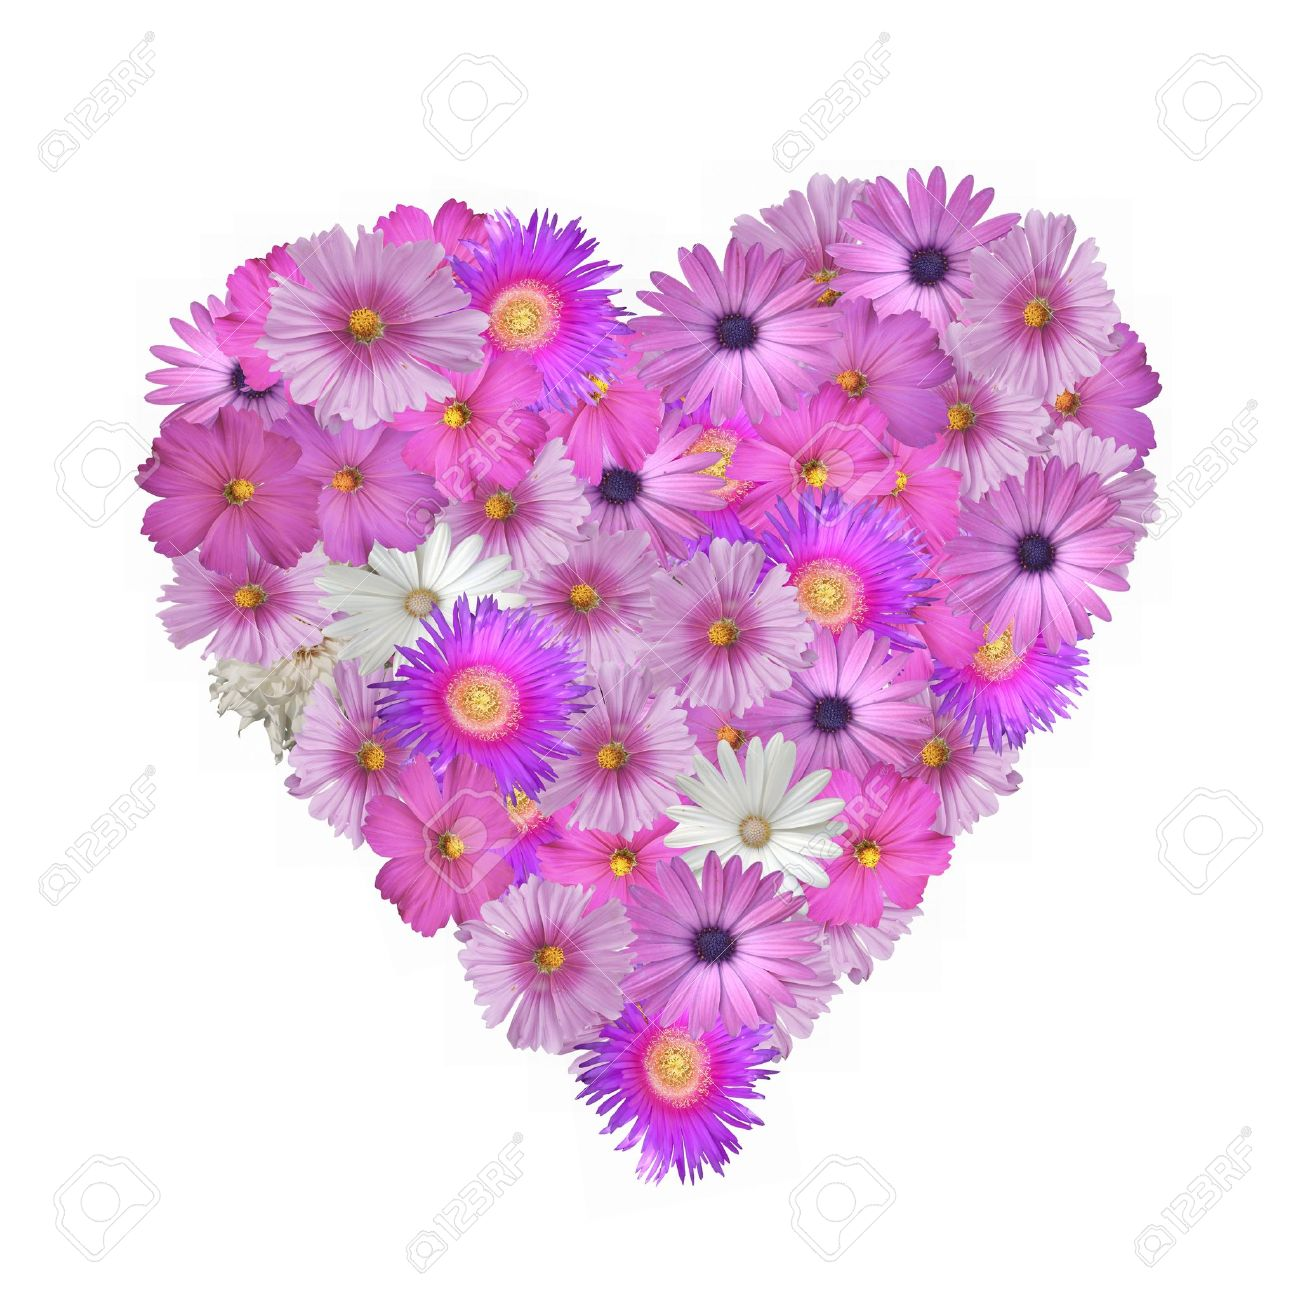 pretty pink flowers in the shape of a heart isolated on white, Beautiful flower